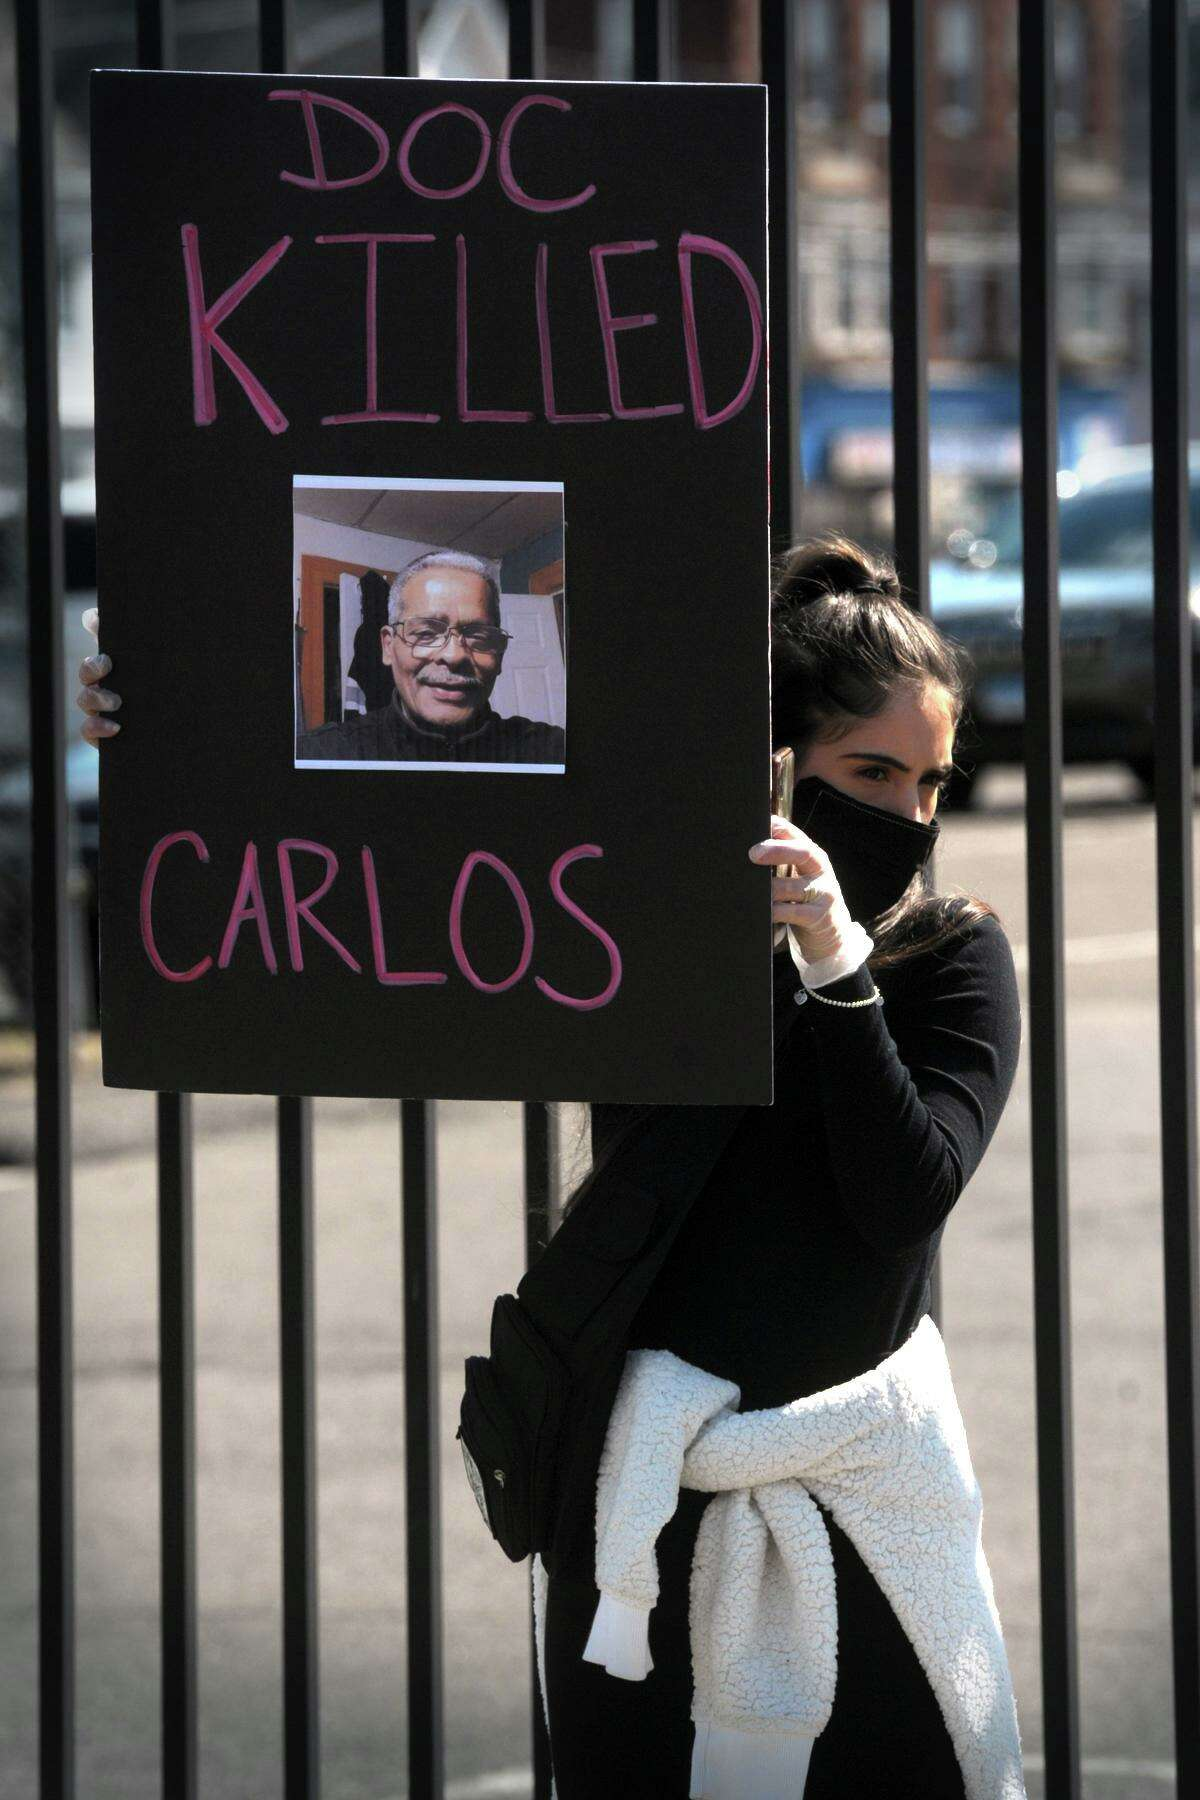 A woman holds a poster with the image of Carlos DeLeon during a protest outside the Bridgeport Correctional Center, in Bridgeport, Conn. April 15, 2020. DeLeon, an inmate from Bridgeport, died in a state prison after contracting coronavirus.